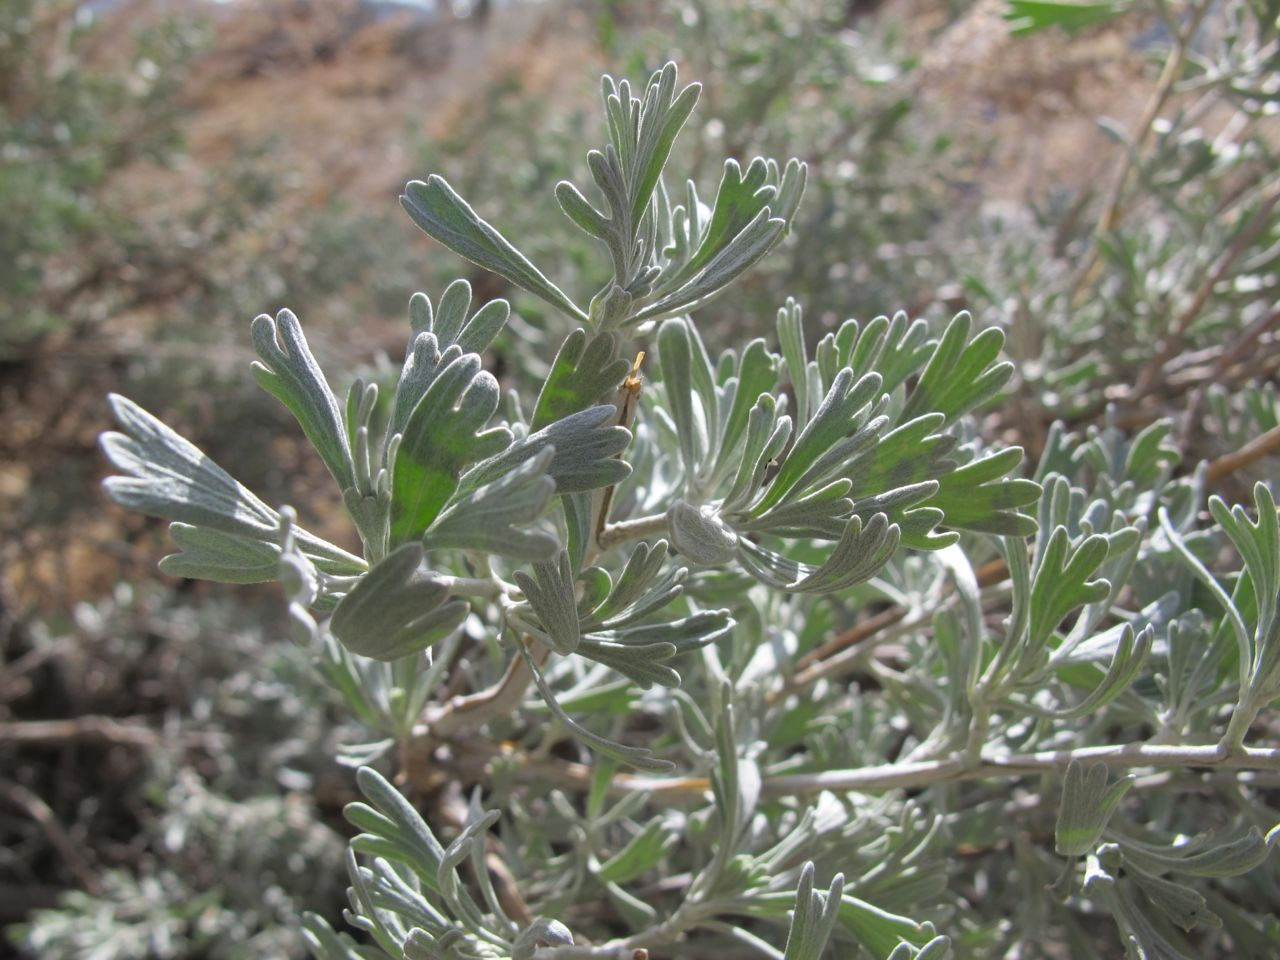 Big sagebrush, Seriphidium tridentum, the indicator shrub for the landscapes I call home.